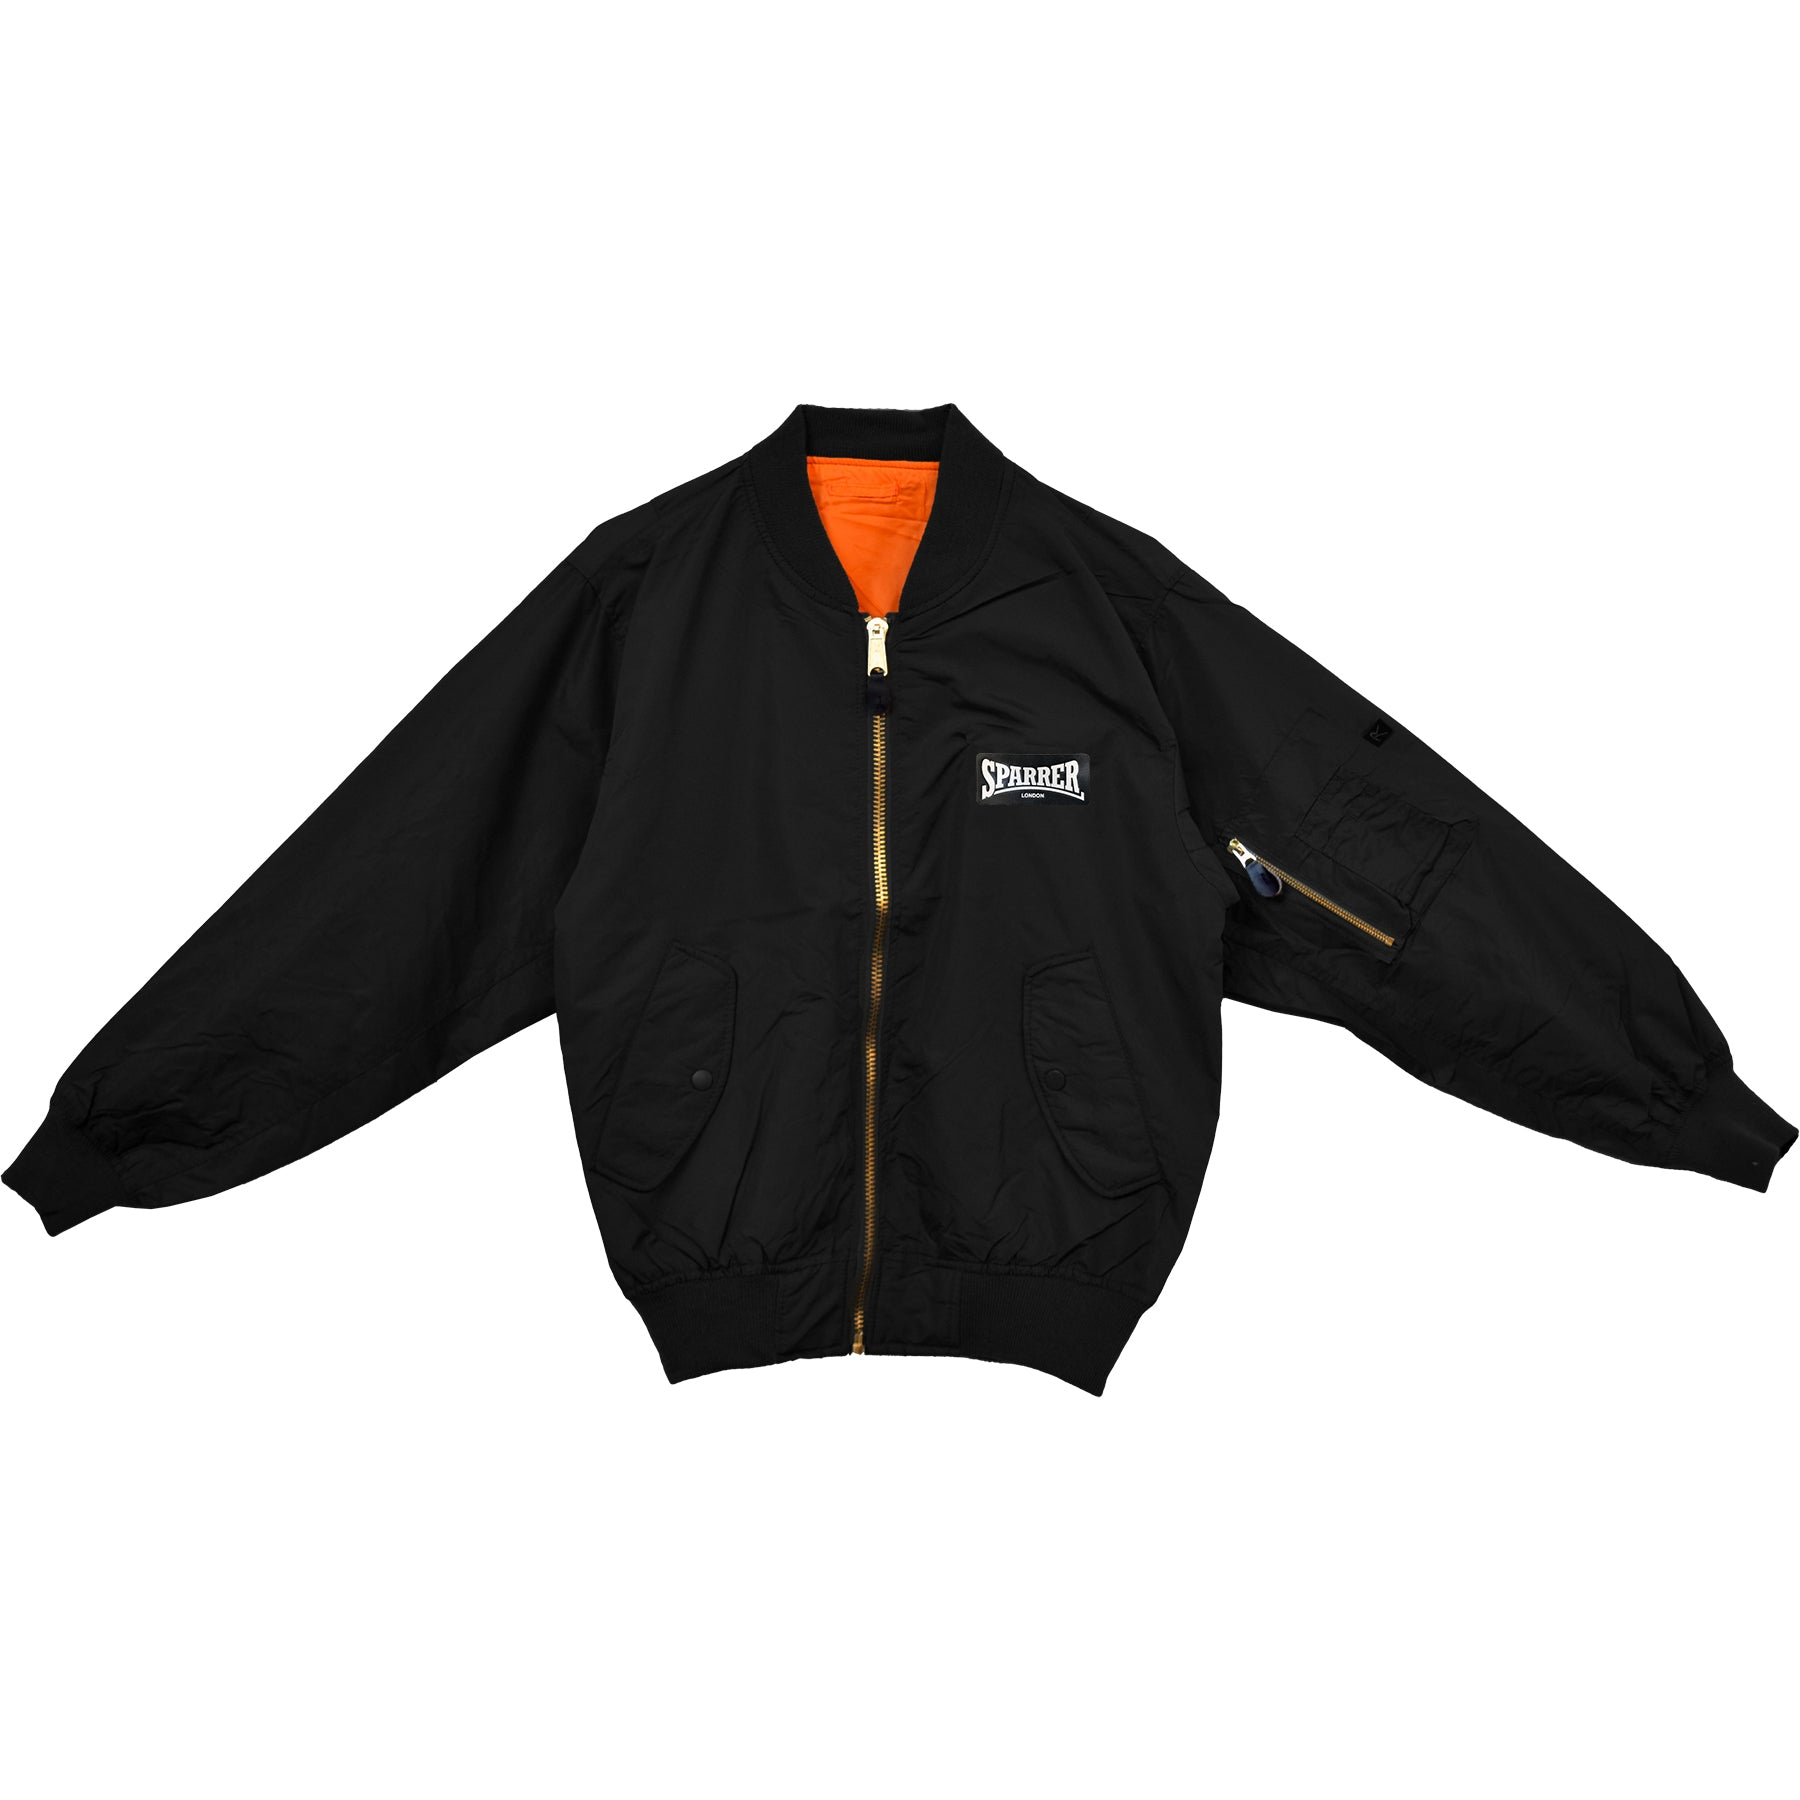 Cock Sparrer - Sparrer London - Bomber Jacket - Black